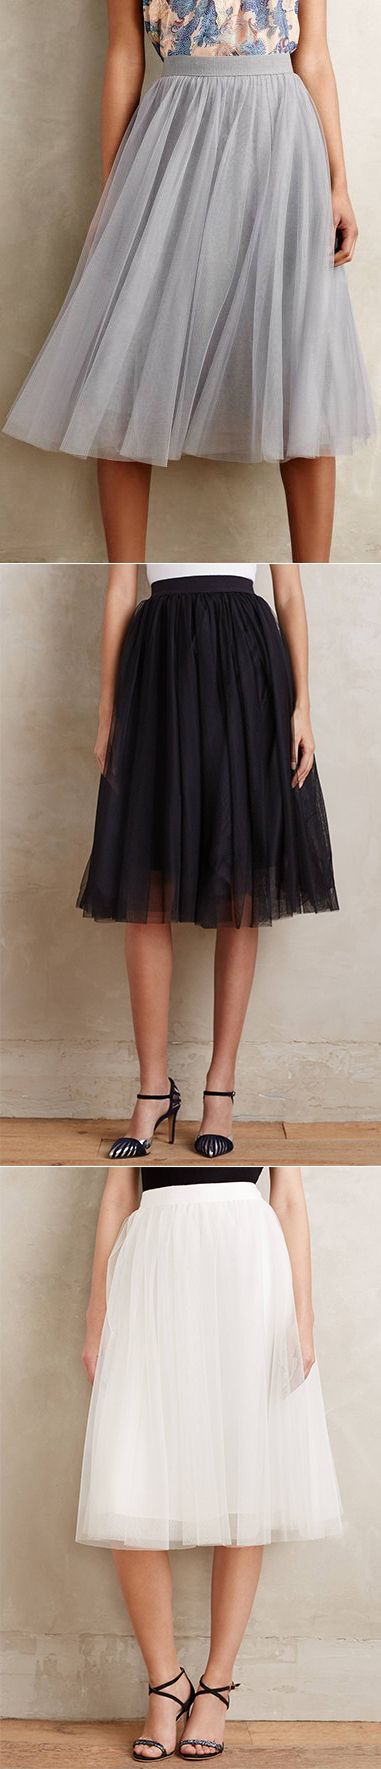 If you are looking for the simple but fashionable skirts, we are very willing to welcome you to pick up your favorite at AZBRO.COM! Only $23.93.